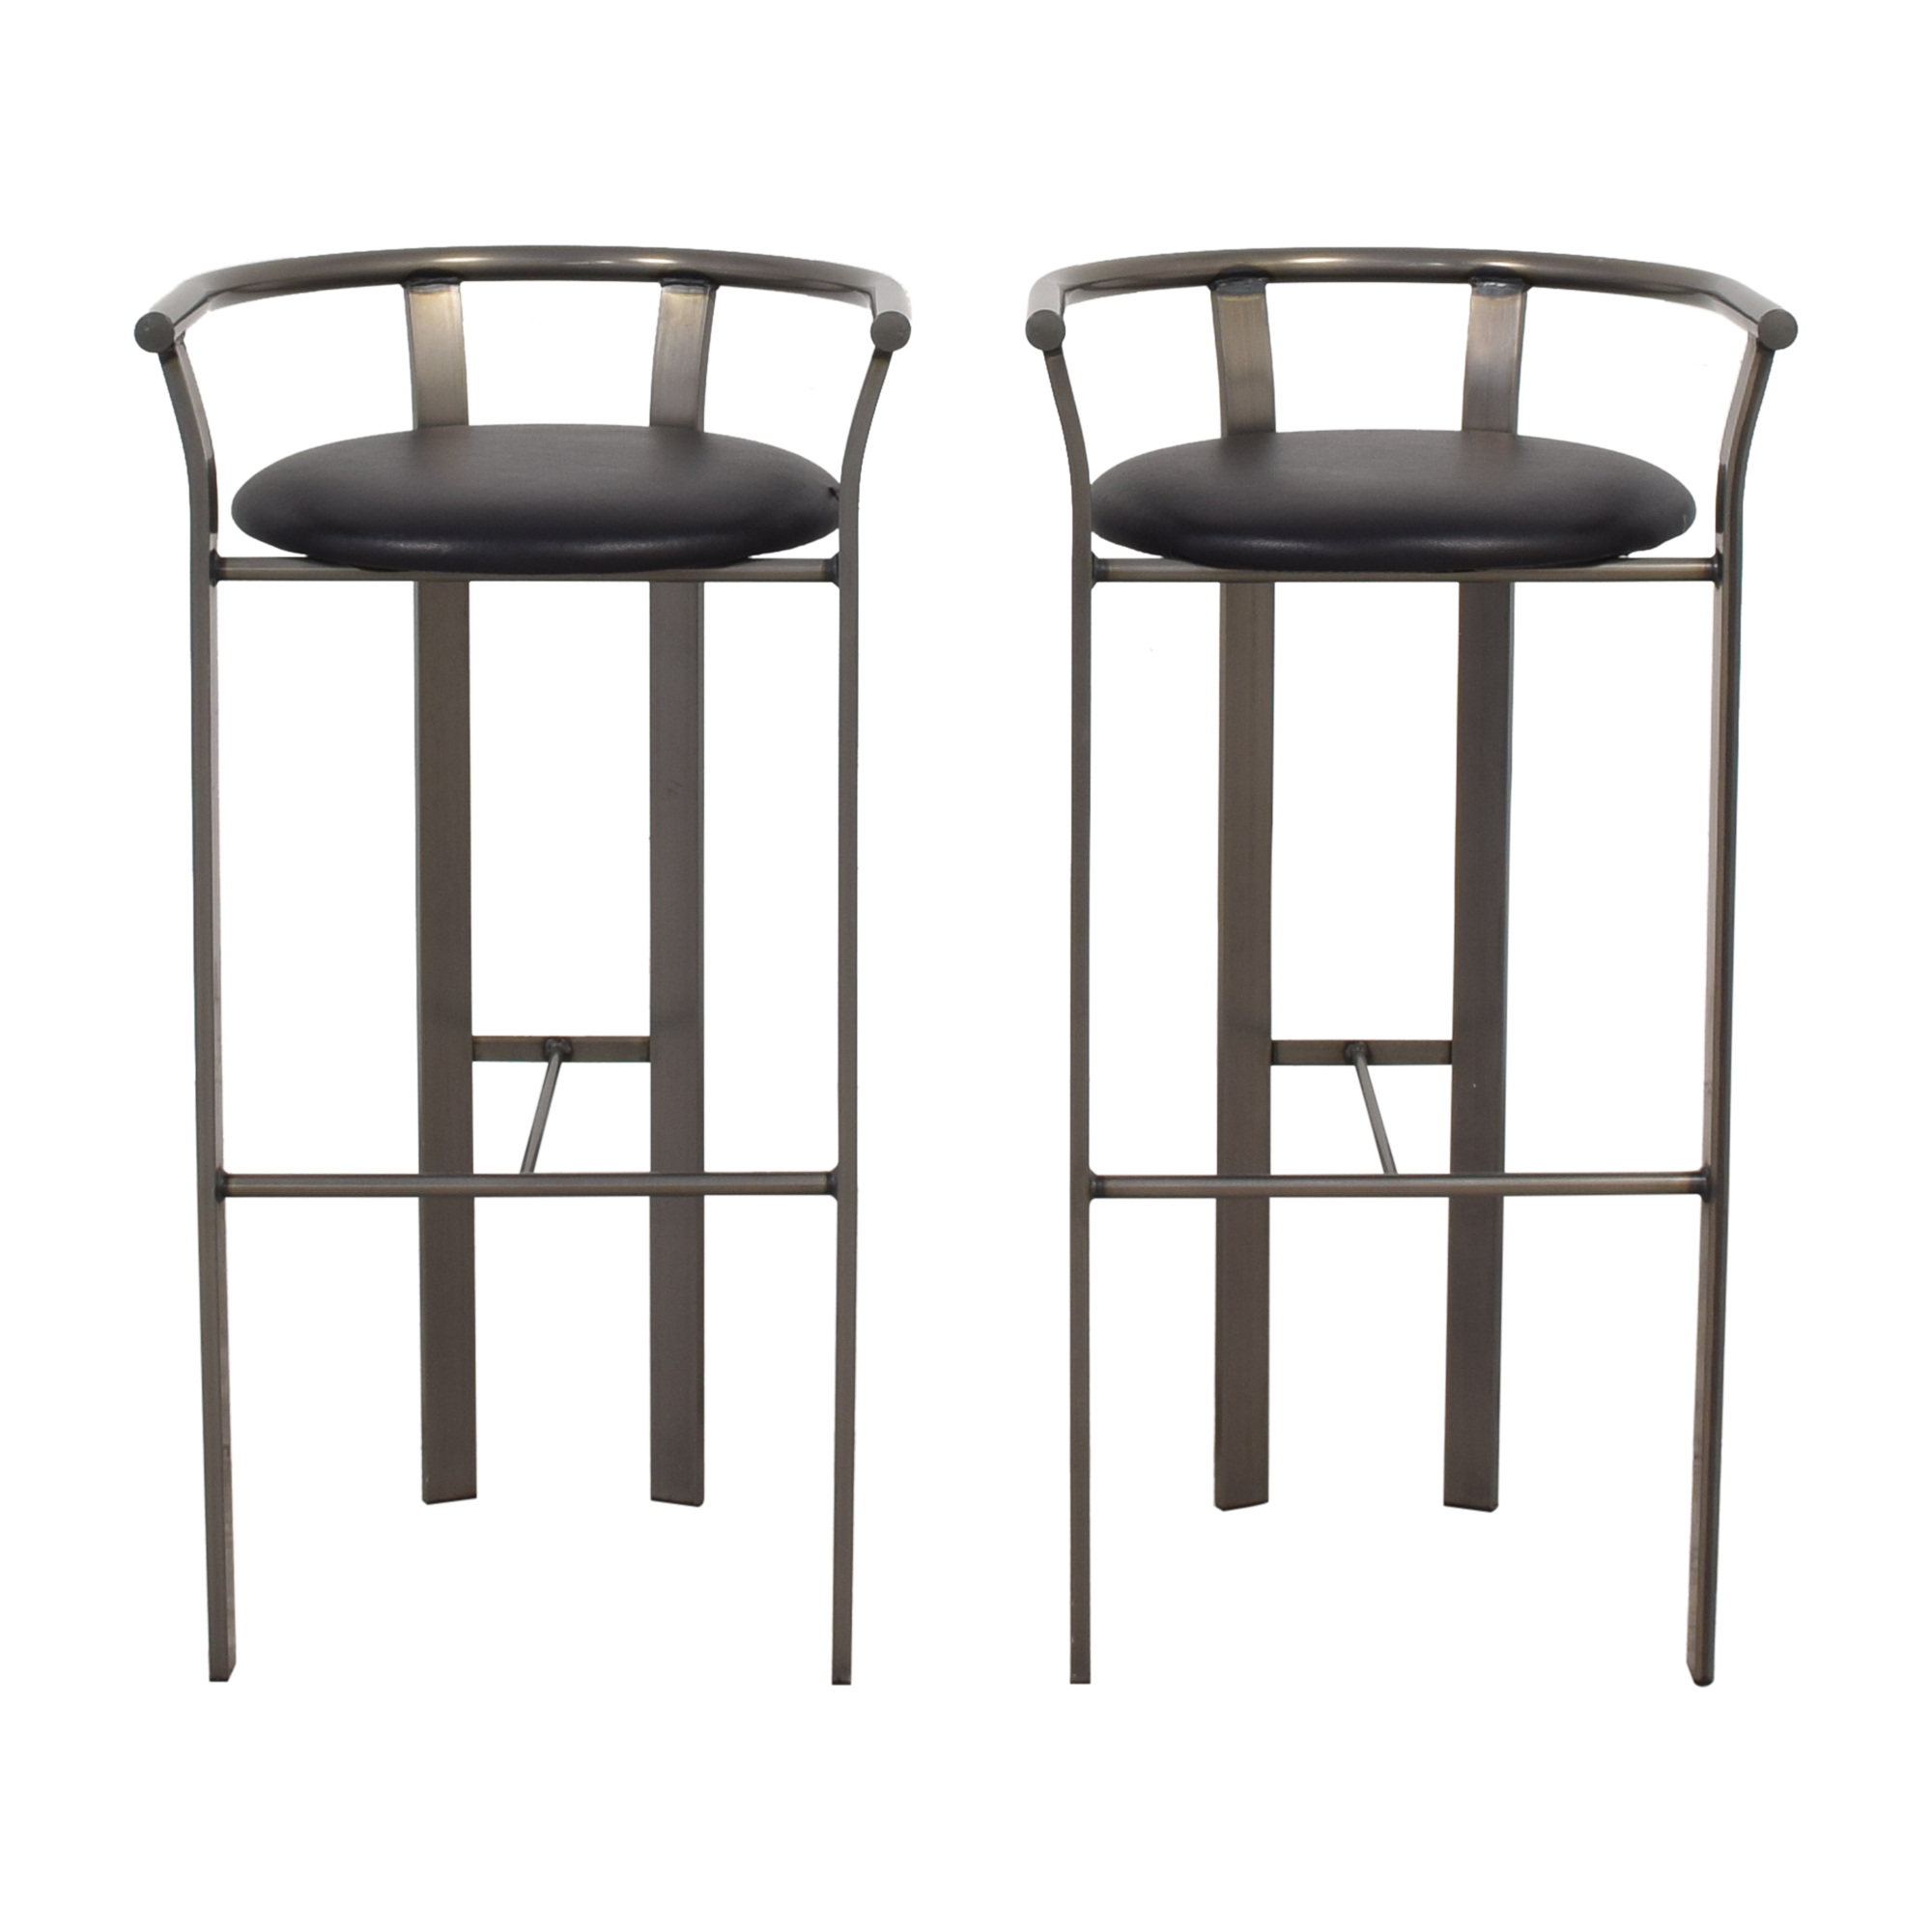 Amisco Amisco Retro Metal & Leather Bar Stools price